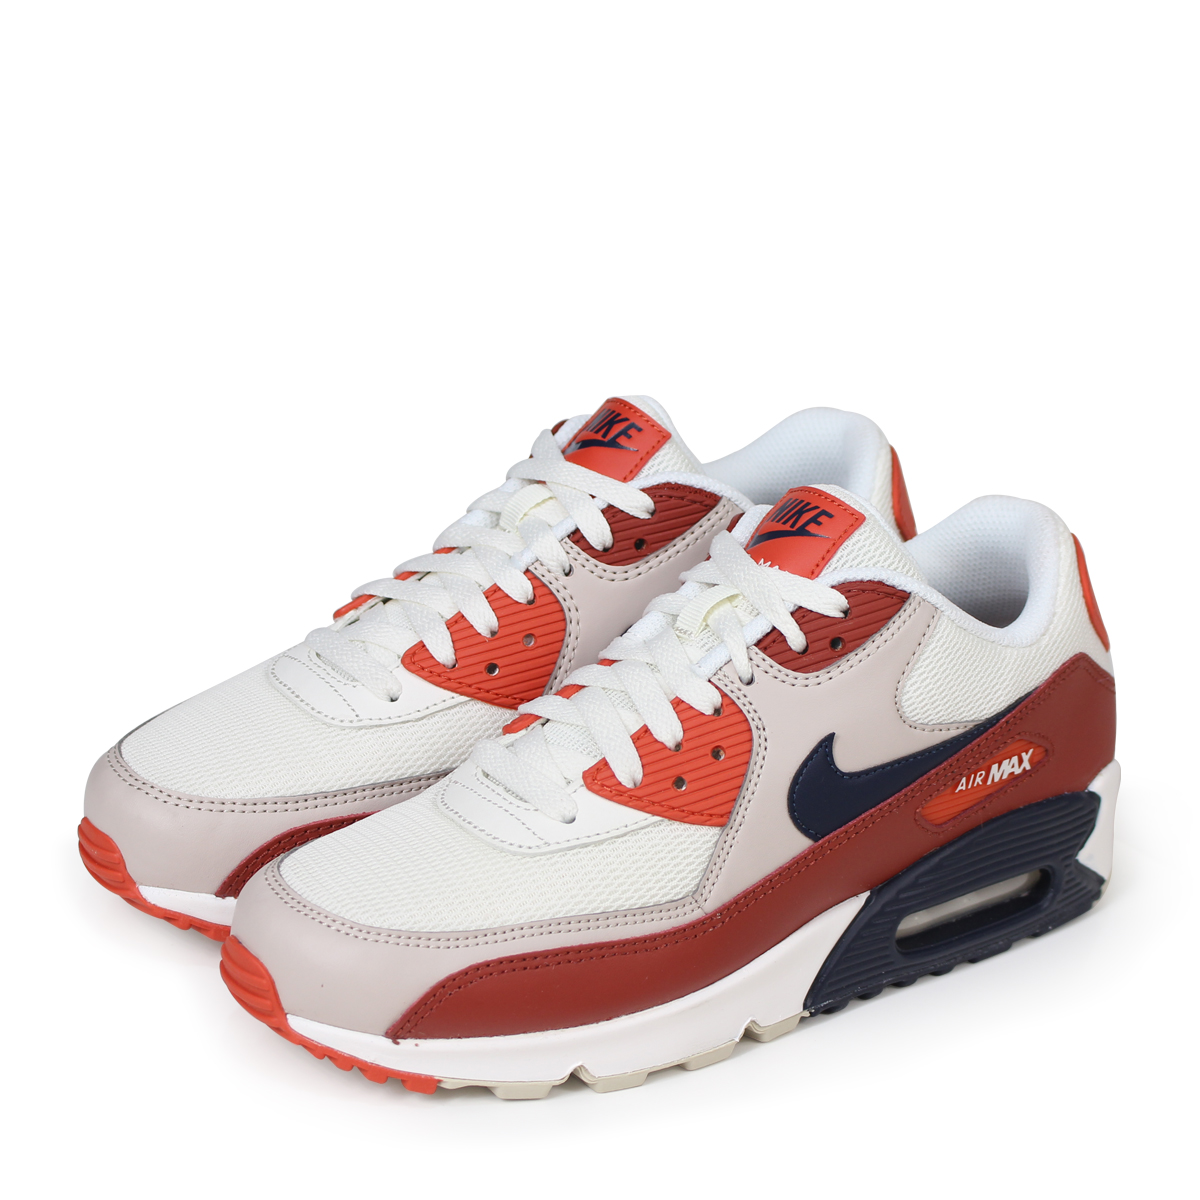 wholesale dealer 6918d 33aba NIKE AIR MAX 90 ESSENTIAL Kie Ney AMAX 90 essential sneakers men gap Dis  AJ1285-600 white  load planned Shinnyu load in reservation product 5 19  containing  ...